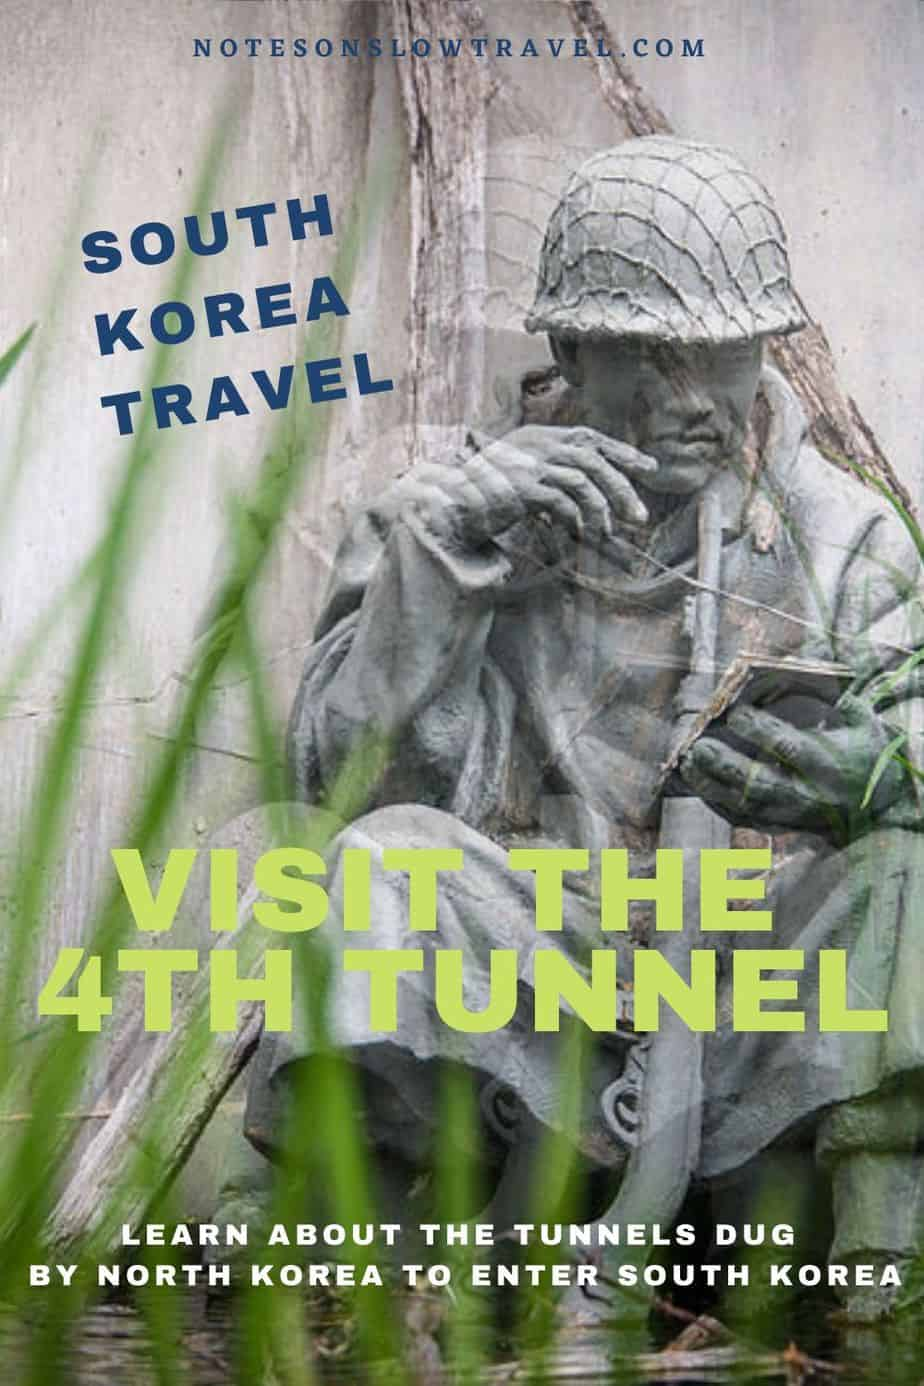 4th Tunnel in South Korea connecting North with South Korea